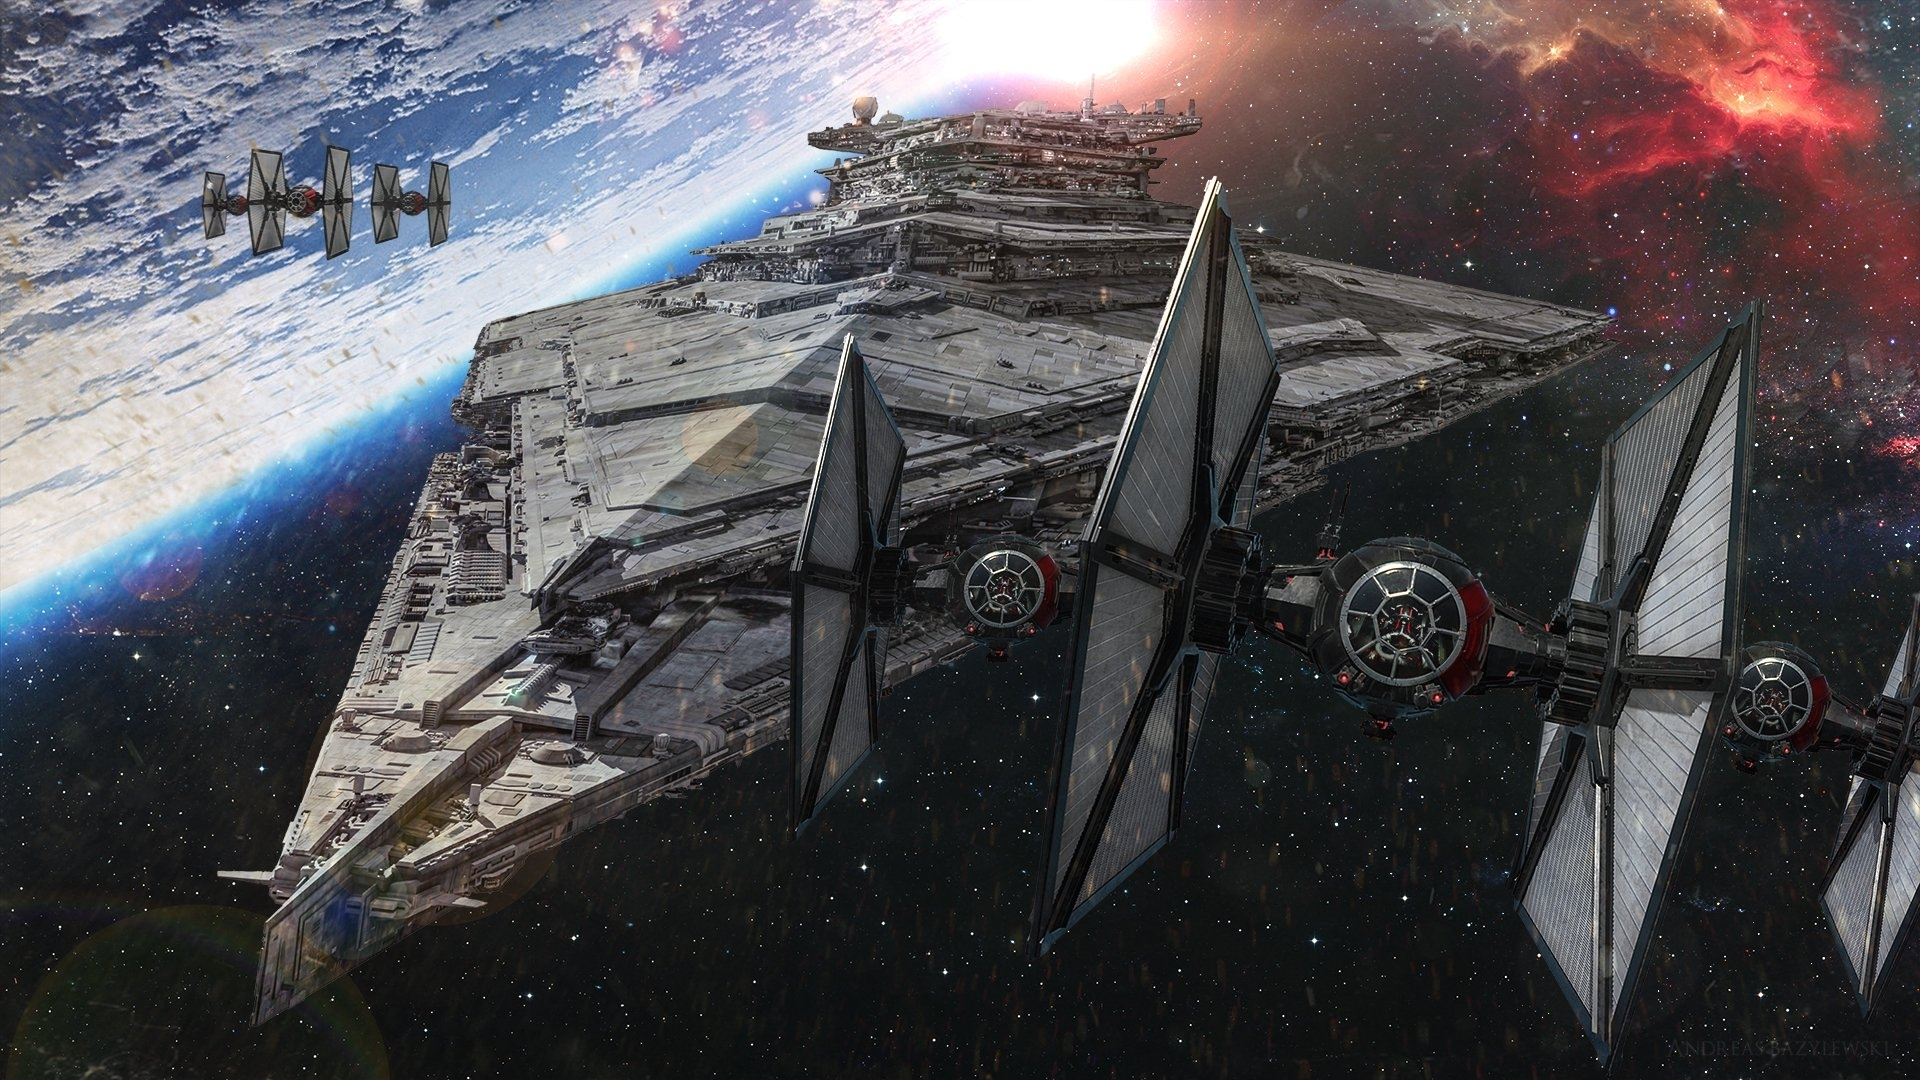 69 star destroyer hd wallpapers | background images - wallpaper abyss